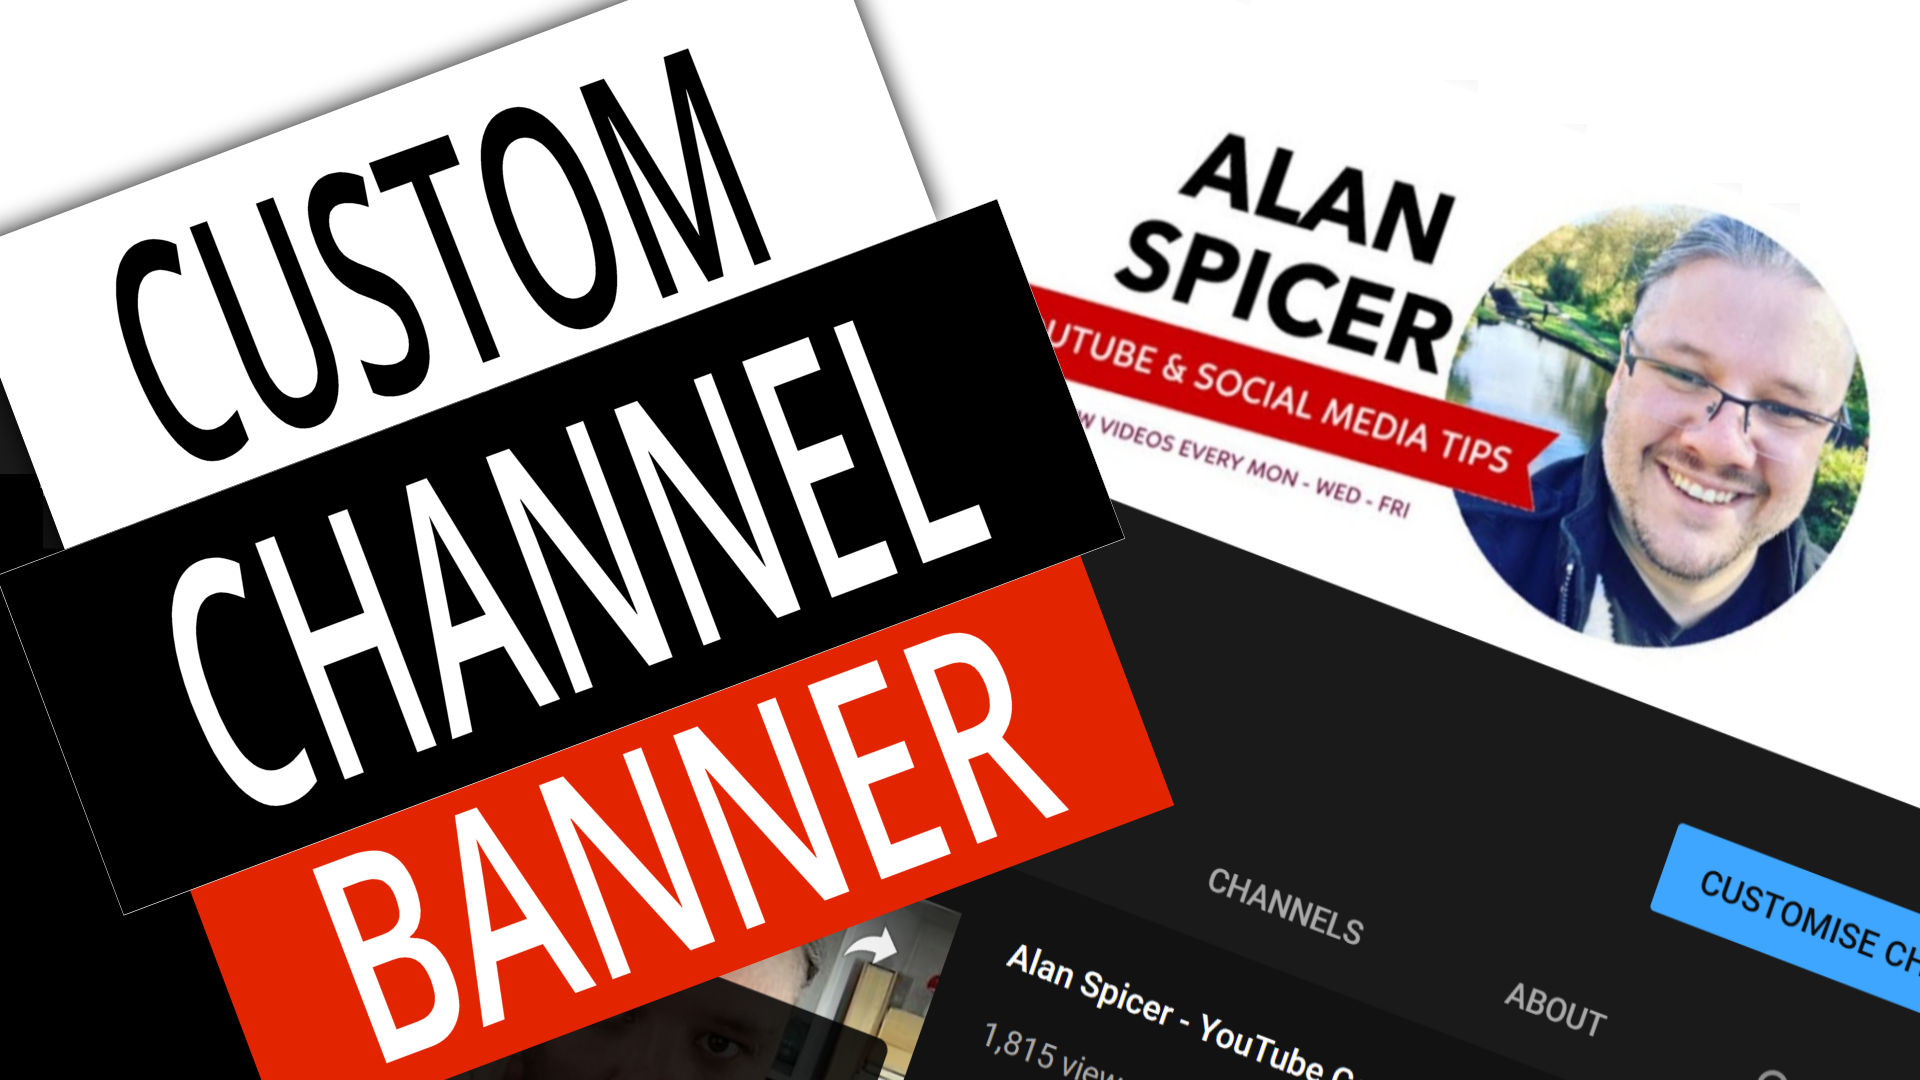 Make A YouTube Channel Banner - FREE YouTube Banner Templates, alan spicer,alanspicer,how to make a youtube banner,how to make channel art,how to make youtube channel art,how to make a youtube banner without photoshop,how to make a free banner for youtube,how to make a banner,youtube banner template,youtube banner,how to make a free banner,free banner tutorial,how to create a youtube banner,youtube channel art tutorial,how to make a channel banner,how to make a channel banner on computer,channel art for youtube free,banner